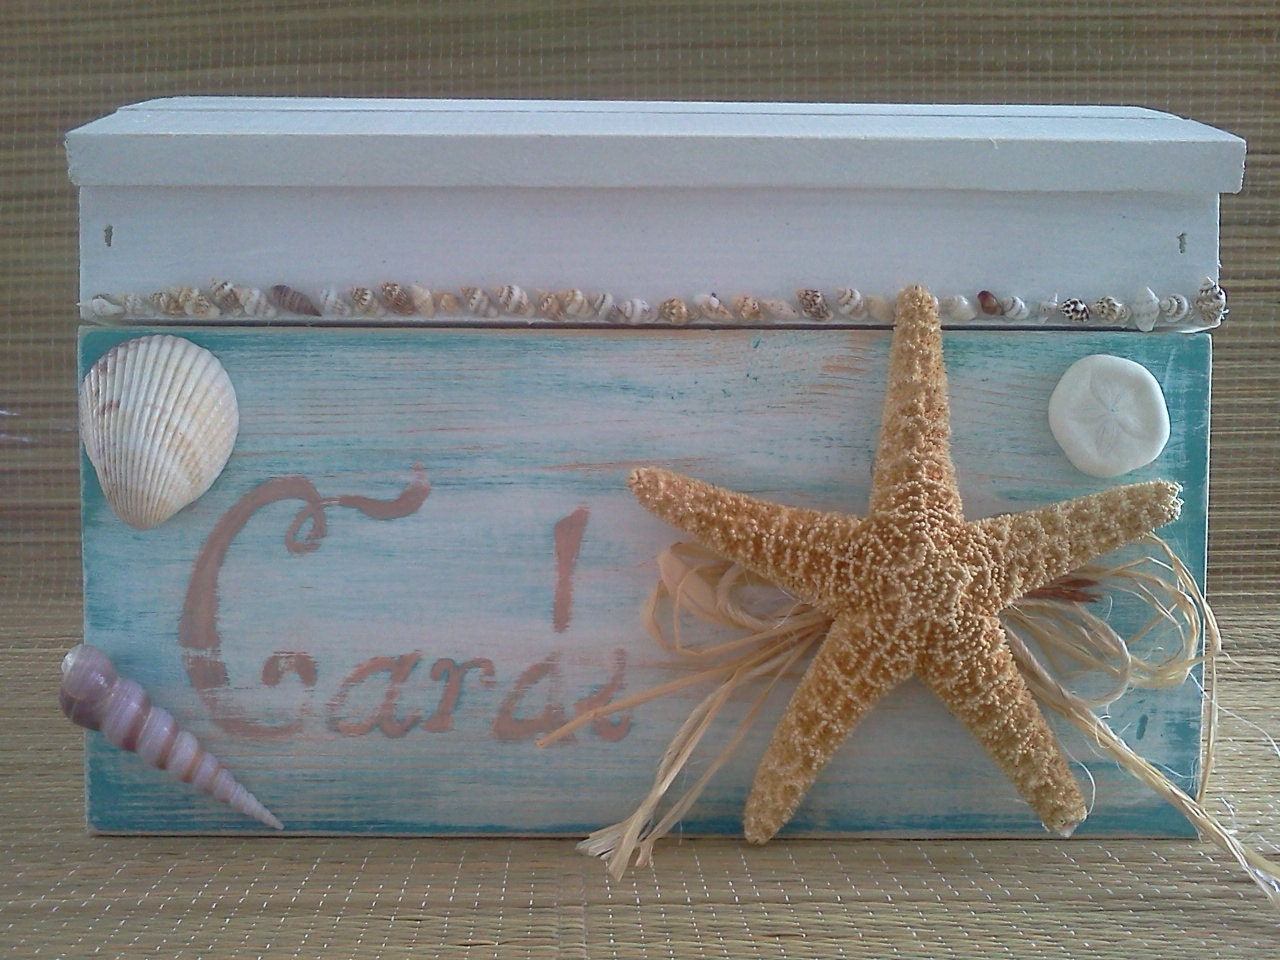 Wedding Gift Card Holder Beach Theme : EtsyYour place to buy and sell all things handmade, vintage, and ...